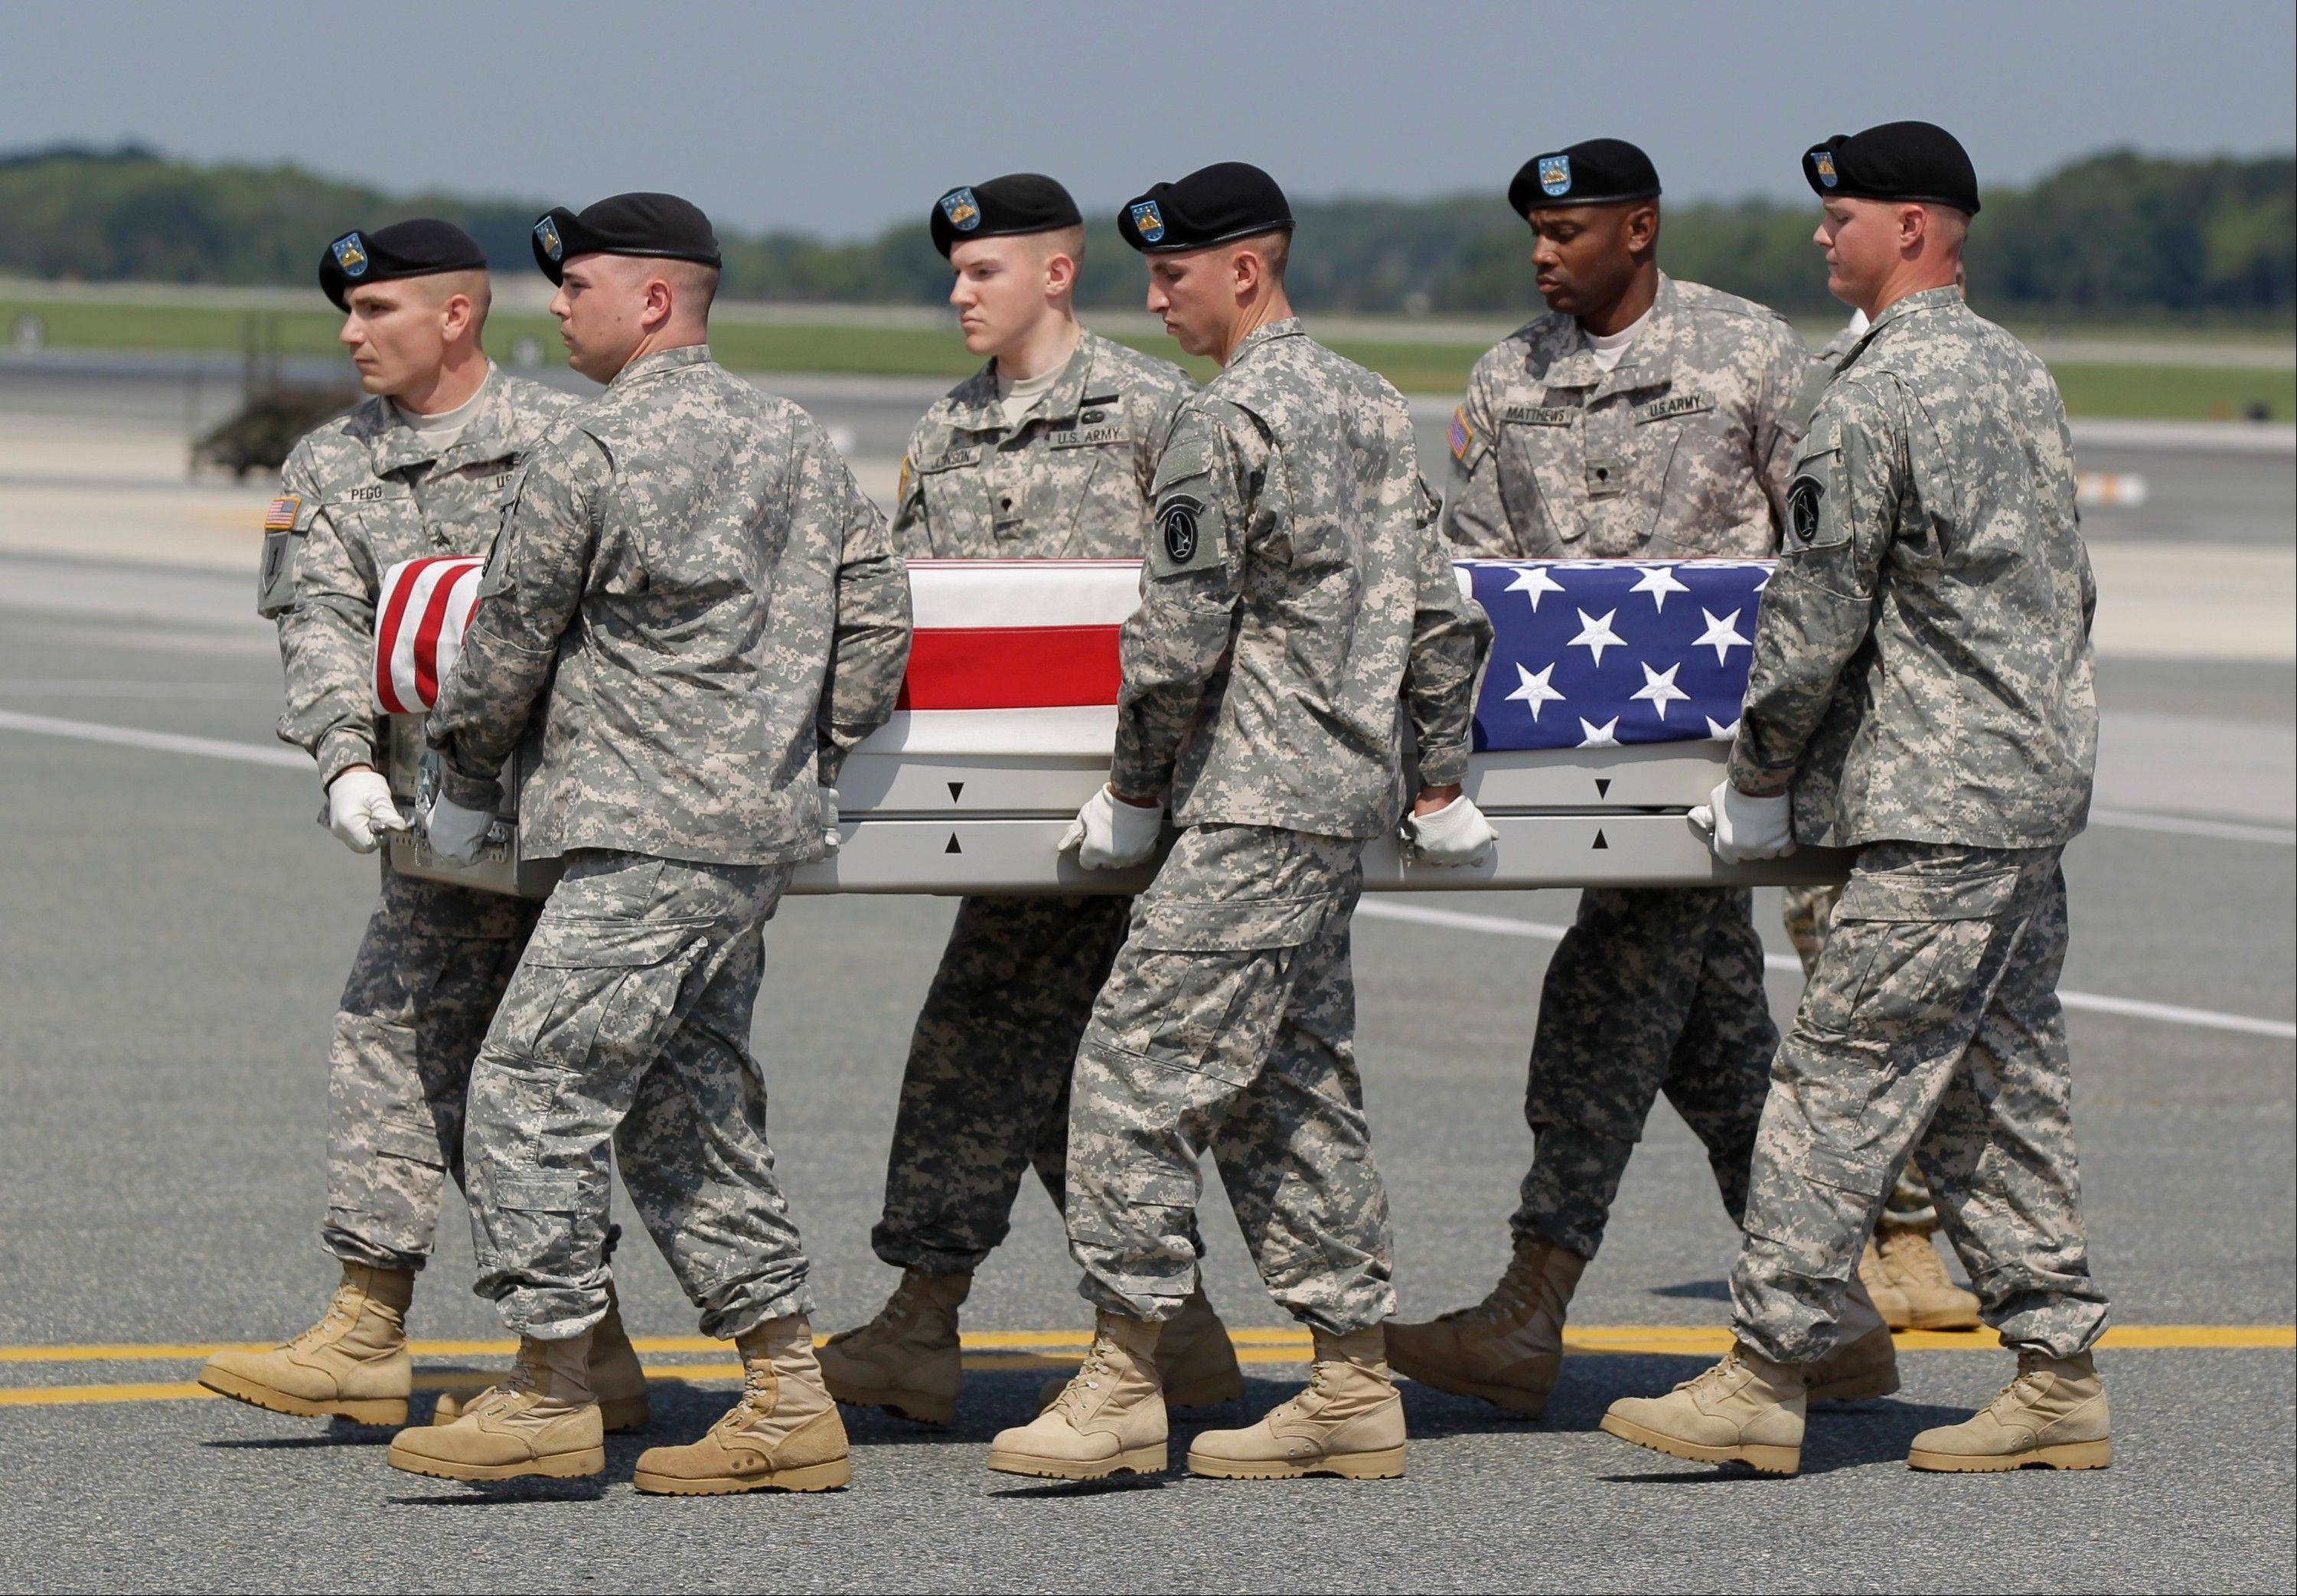 Associated Press/Aug. 30An Army carry team moves a transfer case containing the remains of Pfc. Shane W. Cantu of Corunna, Mich., at Dover Air Force Base, Del.